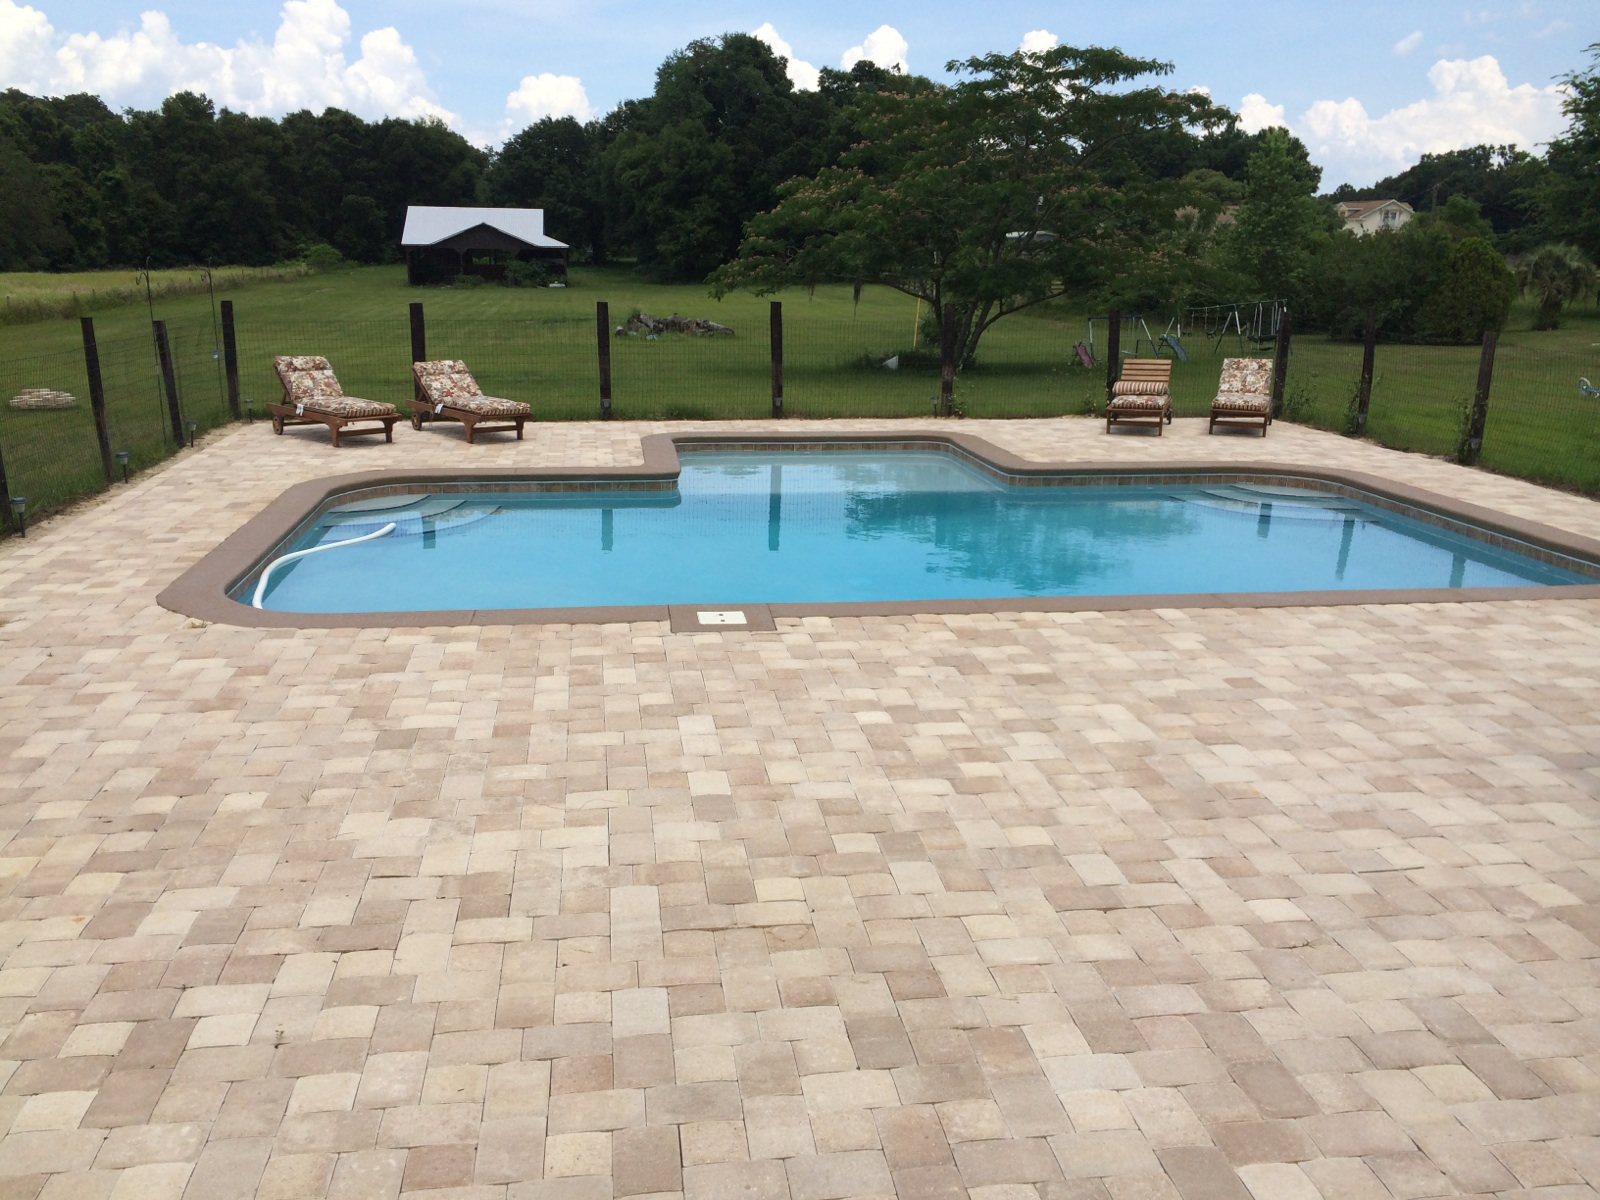 Proform pools and spas in tampa fl 33613 for Florida hot tubs